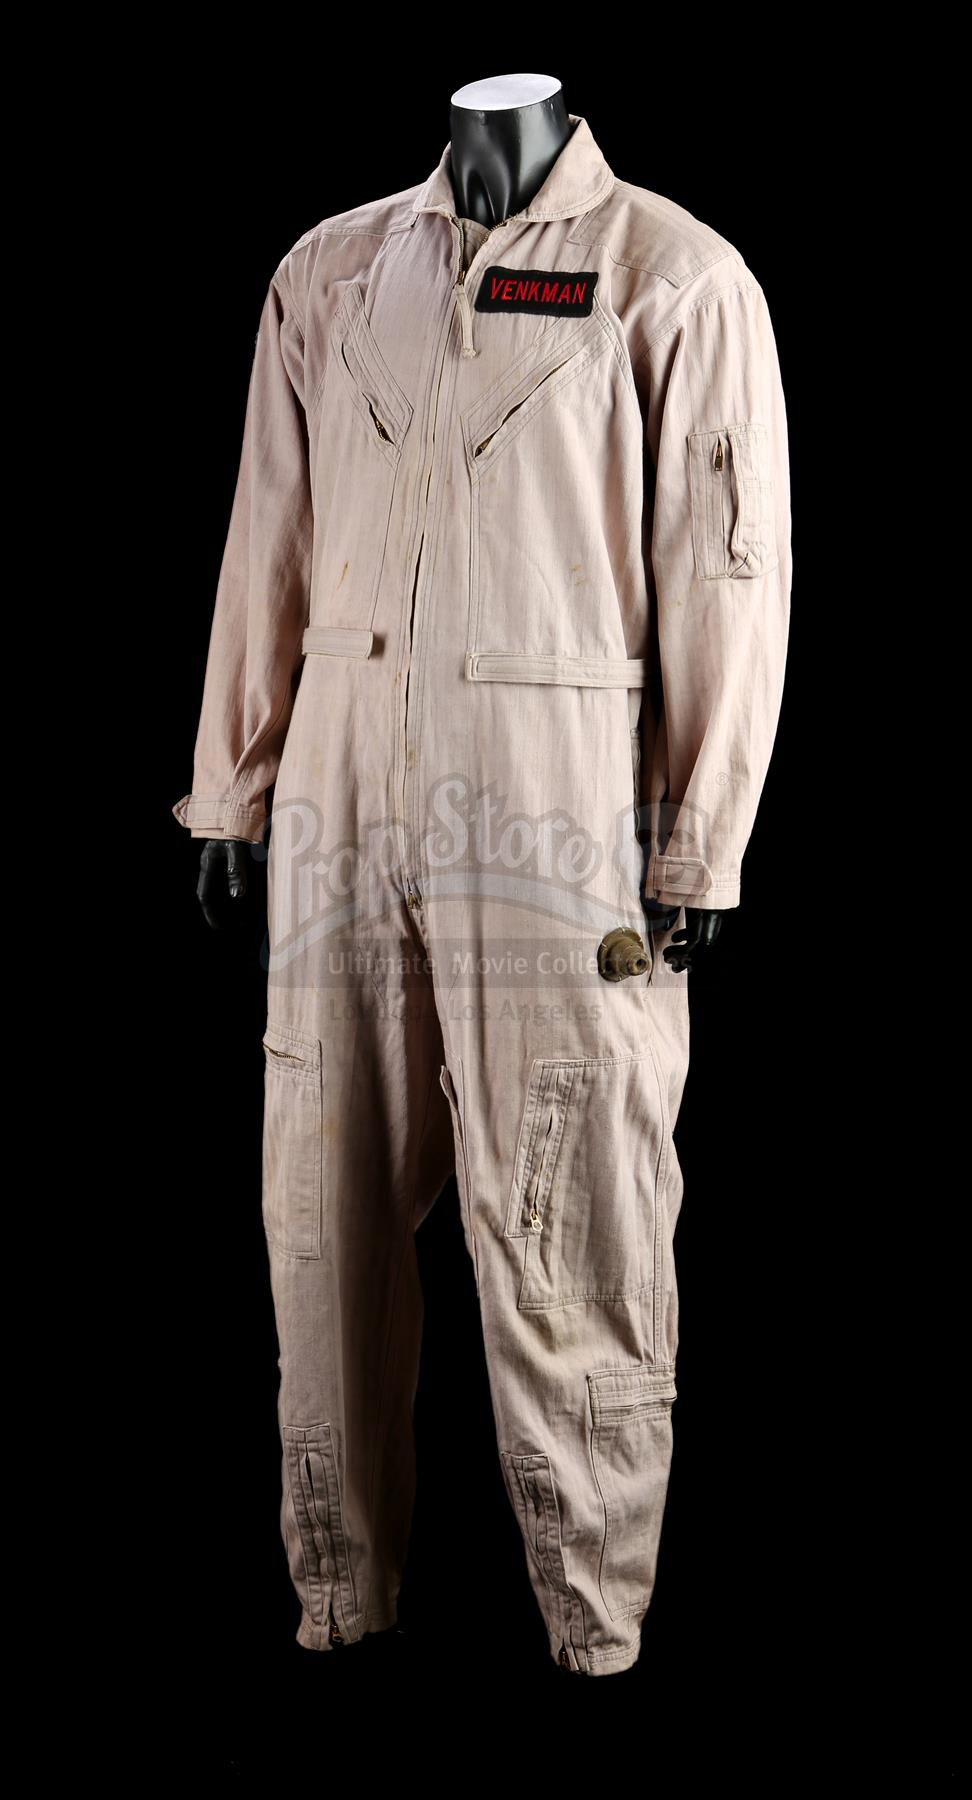 Dr. Peter Venkman's (Bill Murray) jumpsuit and an autographed cast photograph from Ivan Reitman's supernatural comedy sequel Ghostbusters II